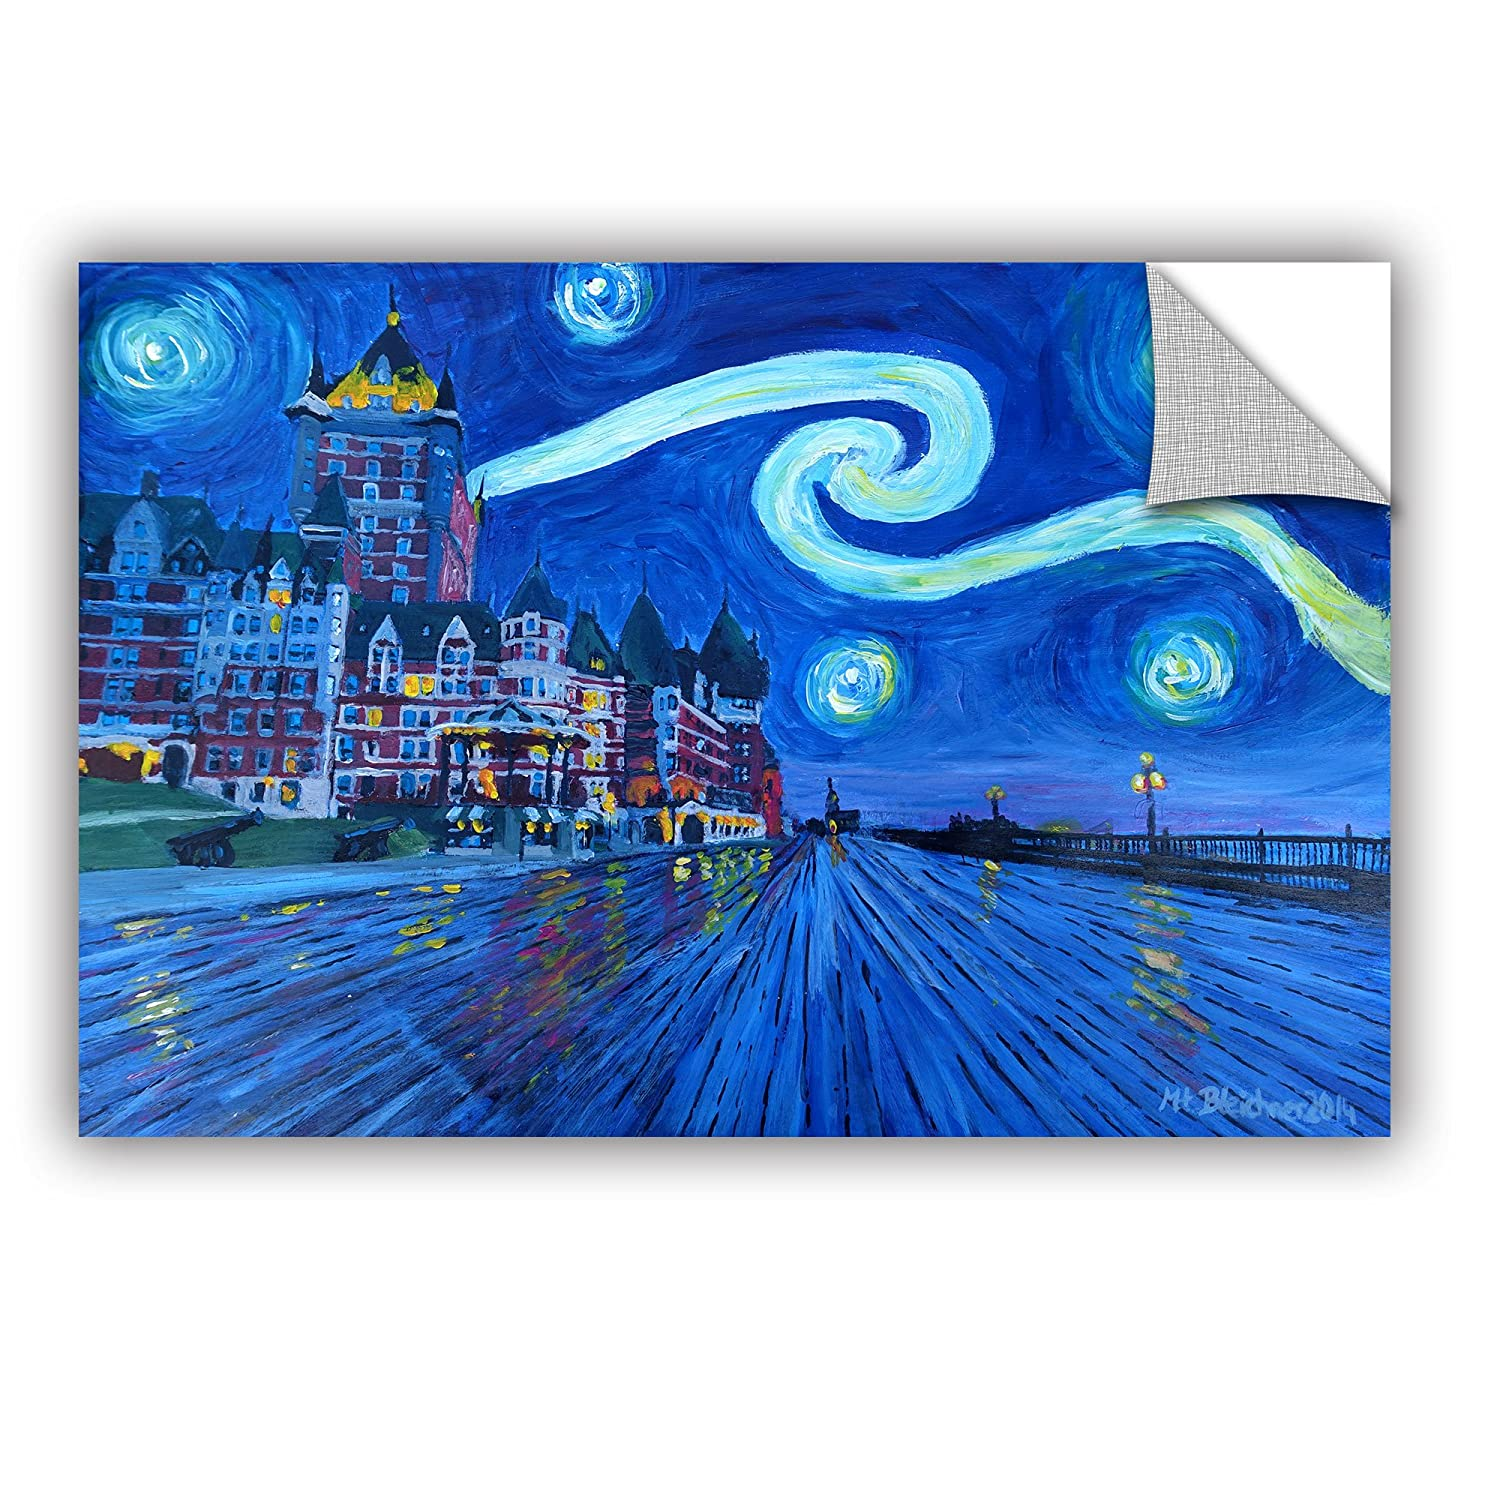 Marcus//Martina Bleichner Starry Night Quebec Chateau Frontenac Removable Wall Art Mural 12X18